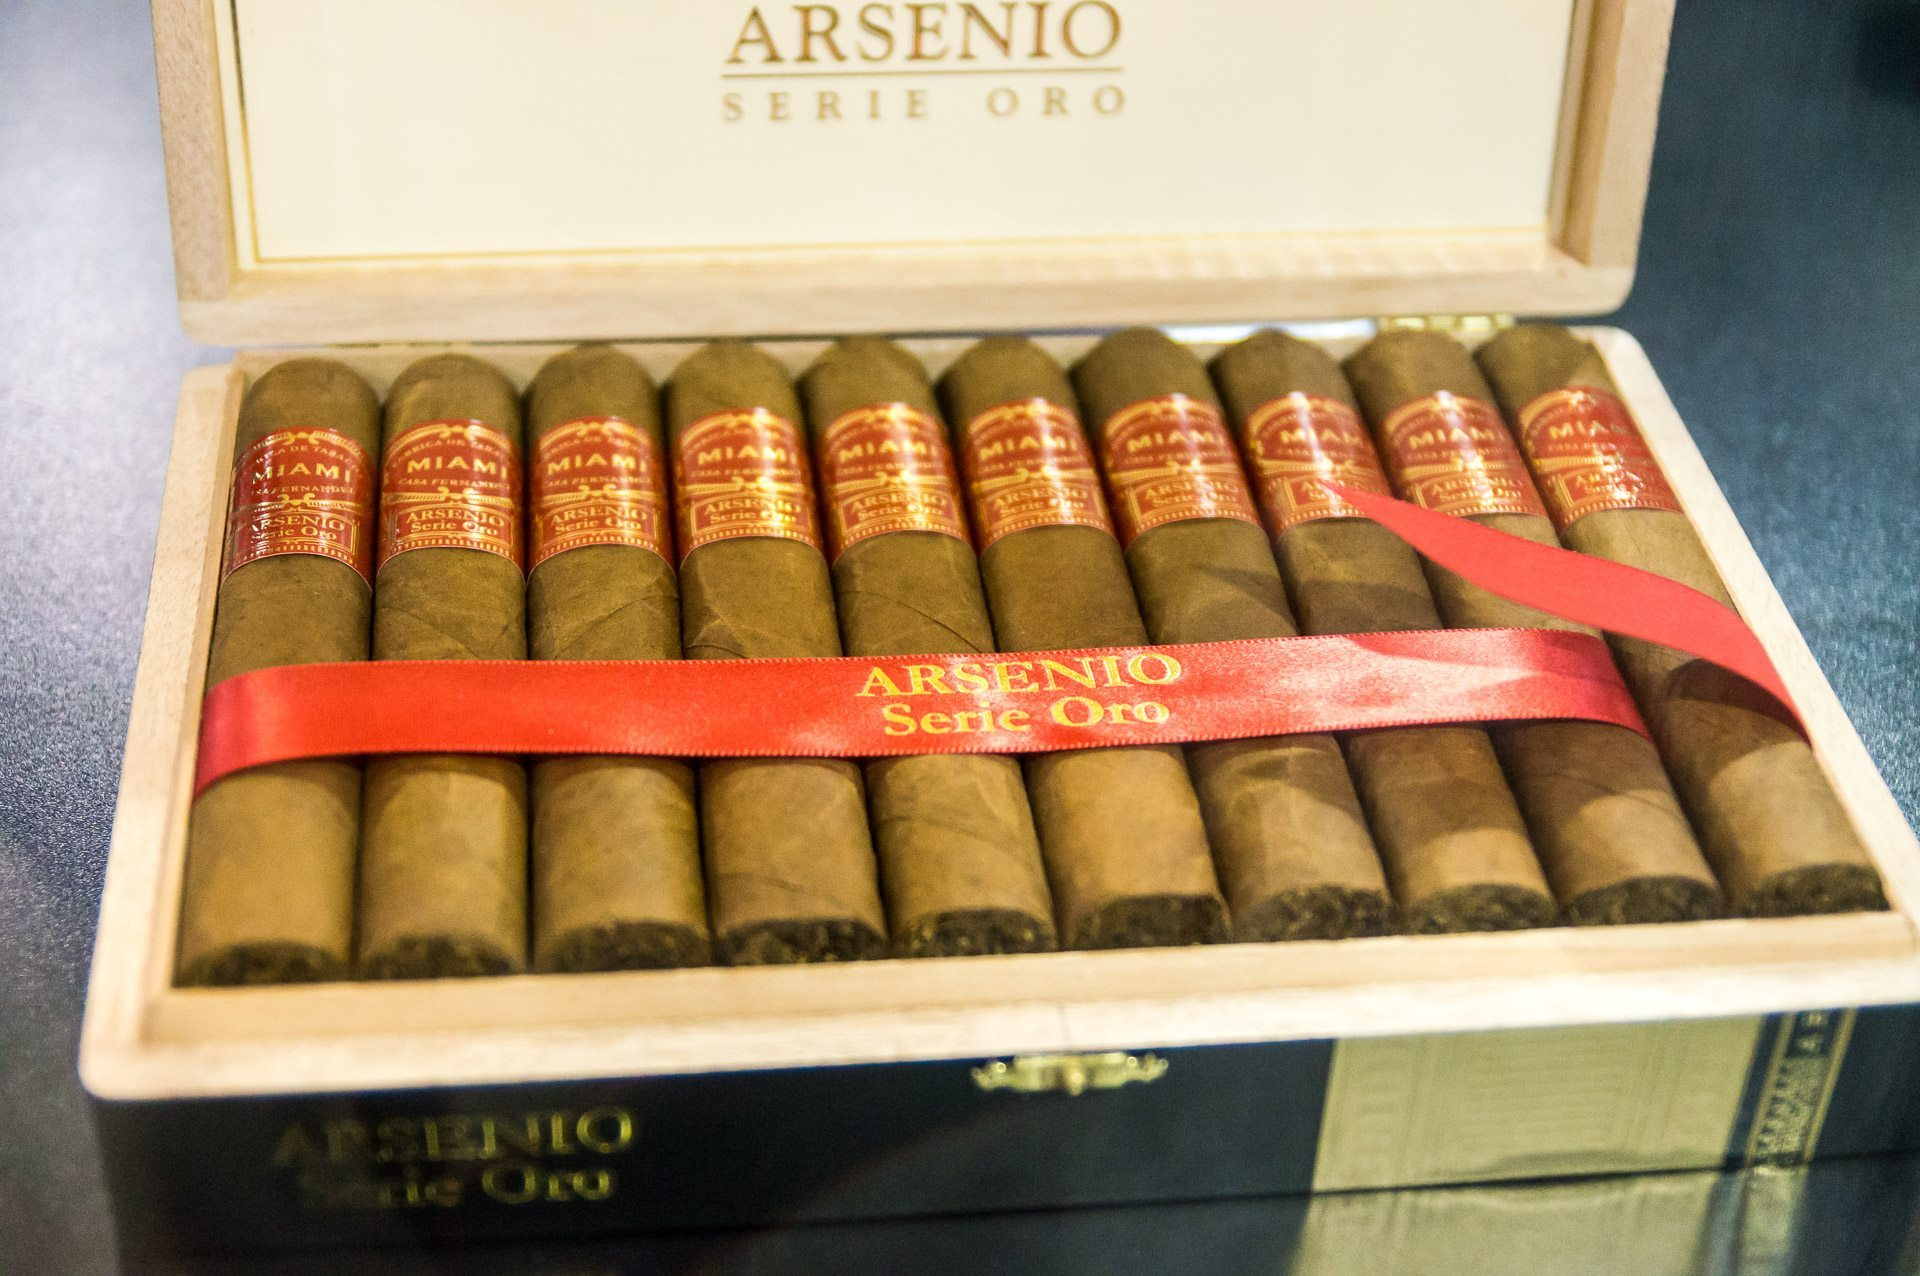 IPCPR 2014: The Show in Pictures – Casa Fernandez, C&C Cigars, Chinnock Cellars and Cordoba & Morales